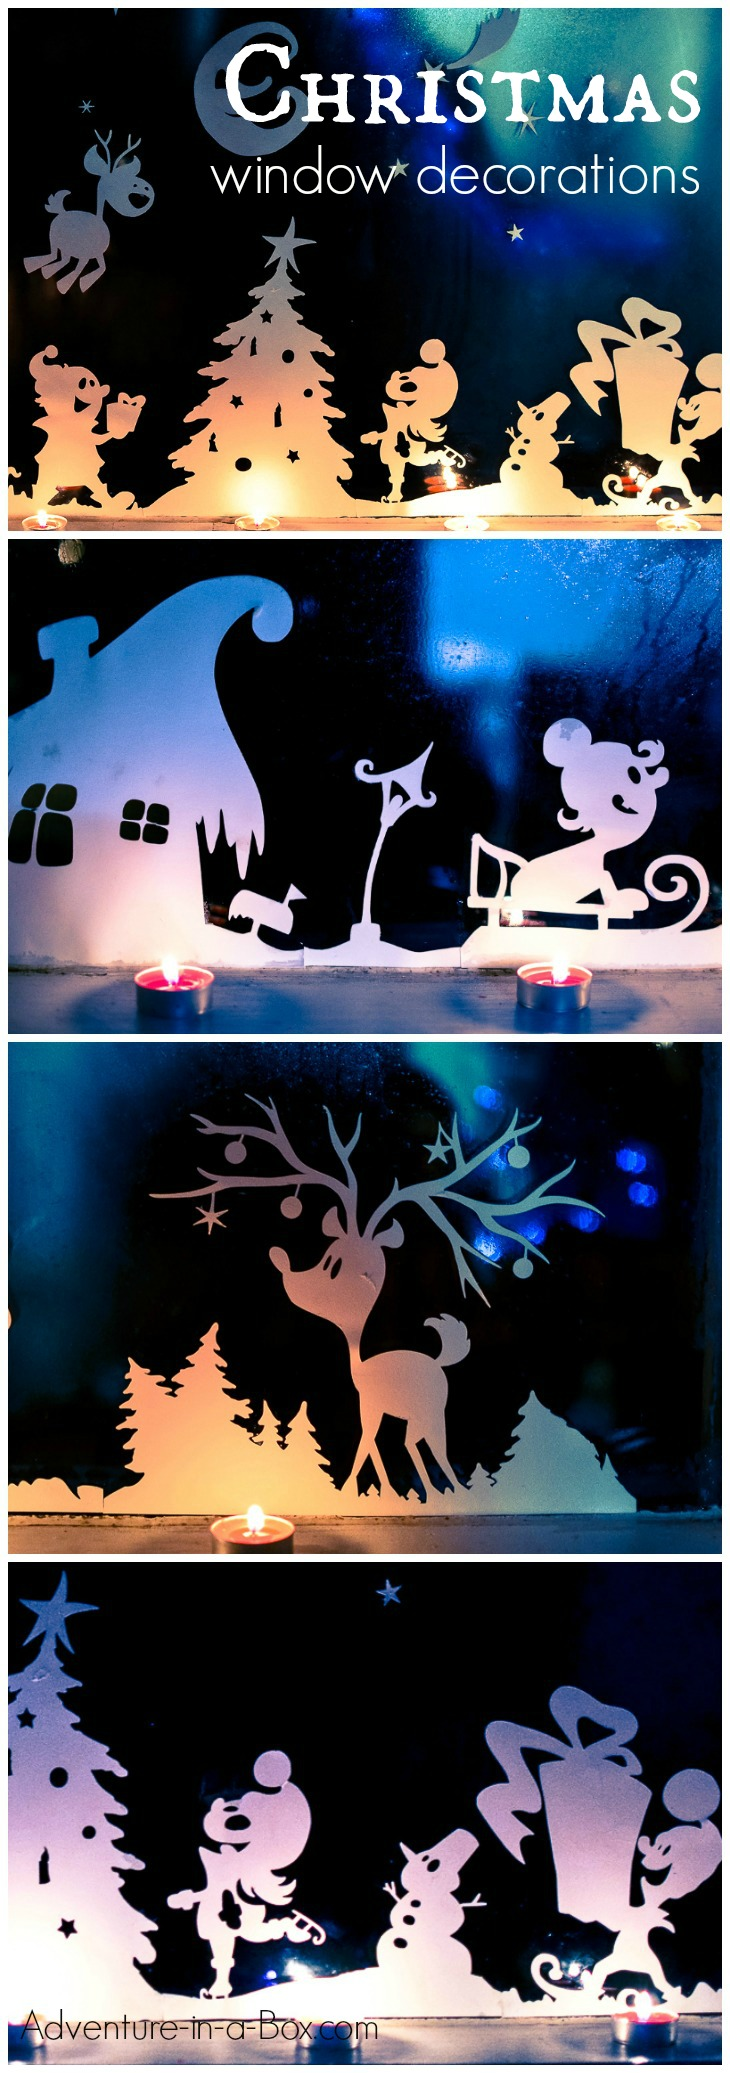 Christmas window decorations - Diy Printable Christmas Window Decorations Cut Print And Decorate Your Windows With Silhouettes Of